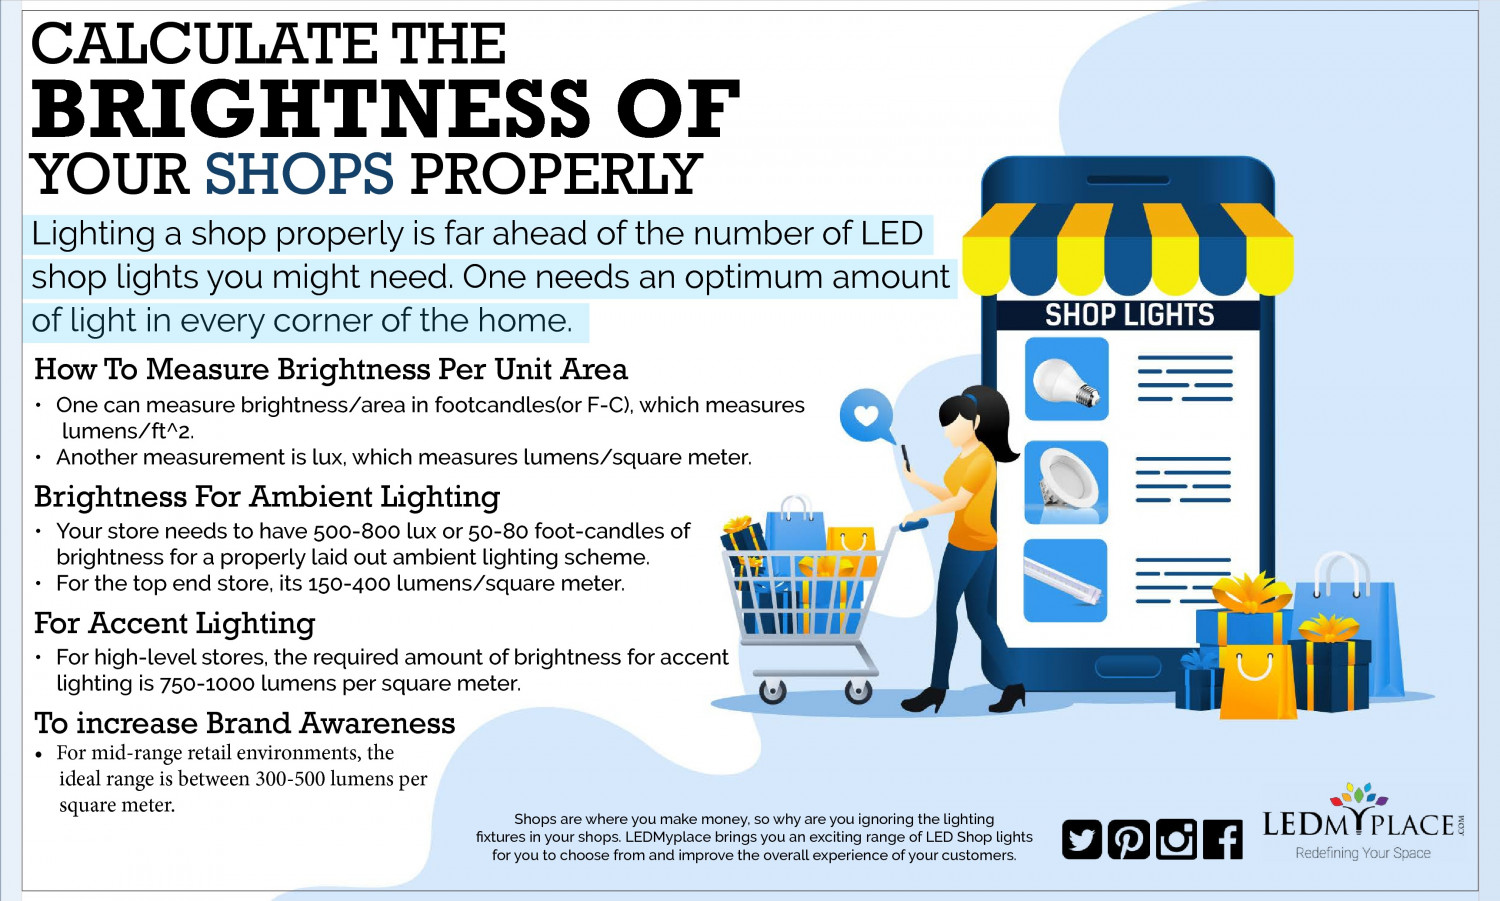 CALCULATE THE BRIGHTNESS OF YOUR SHOPS PROPERLY Infographic